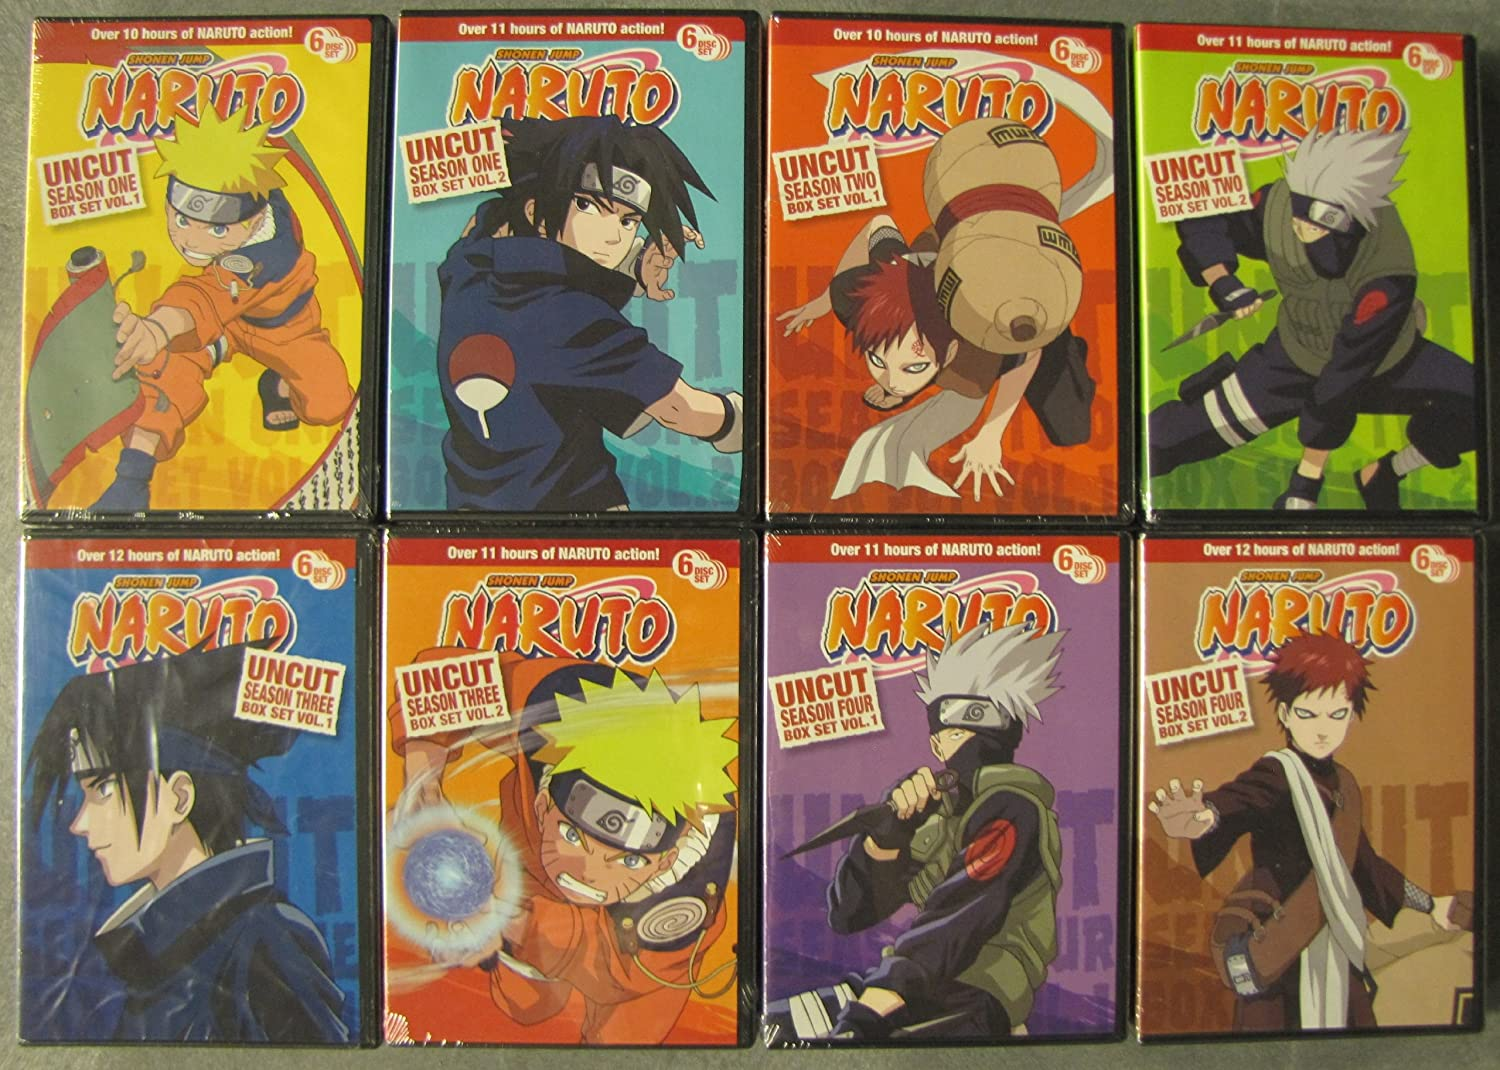 amazon com naruto uncut complete seasons 1 4 8 box set pack 220